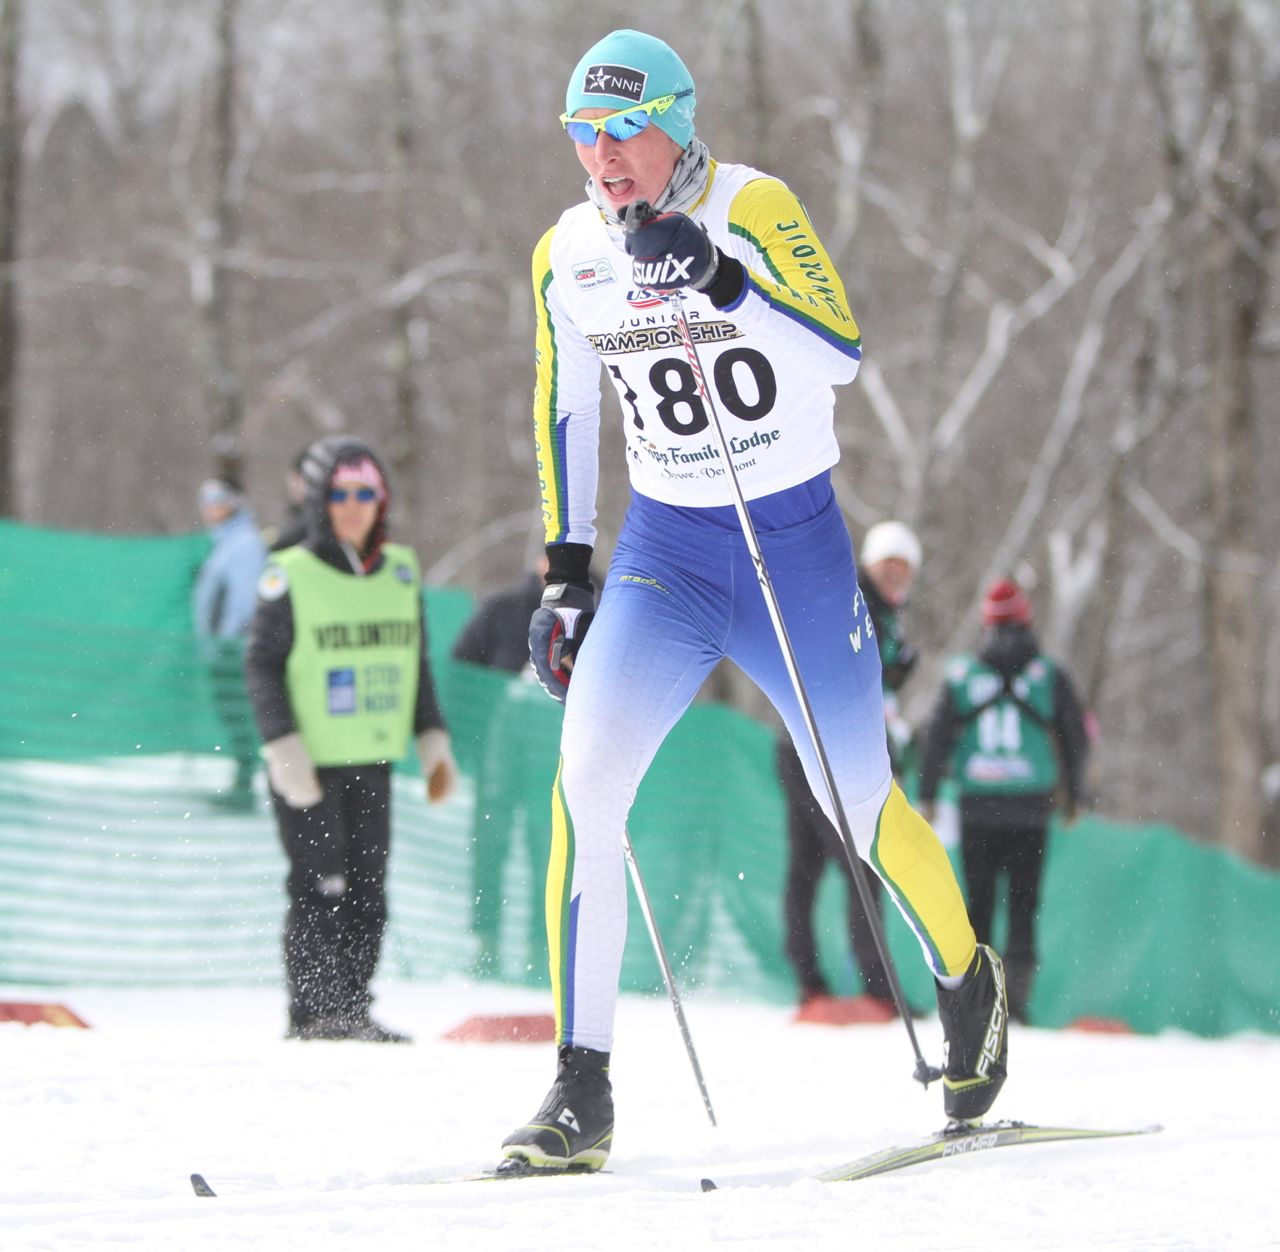 https://fasterskier.com/wp-content/blogs.dir/1/files/2014/03/Junior-Nationals-Classic-Sprint-Qualification248.jpg